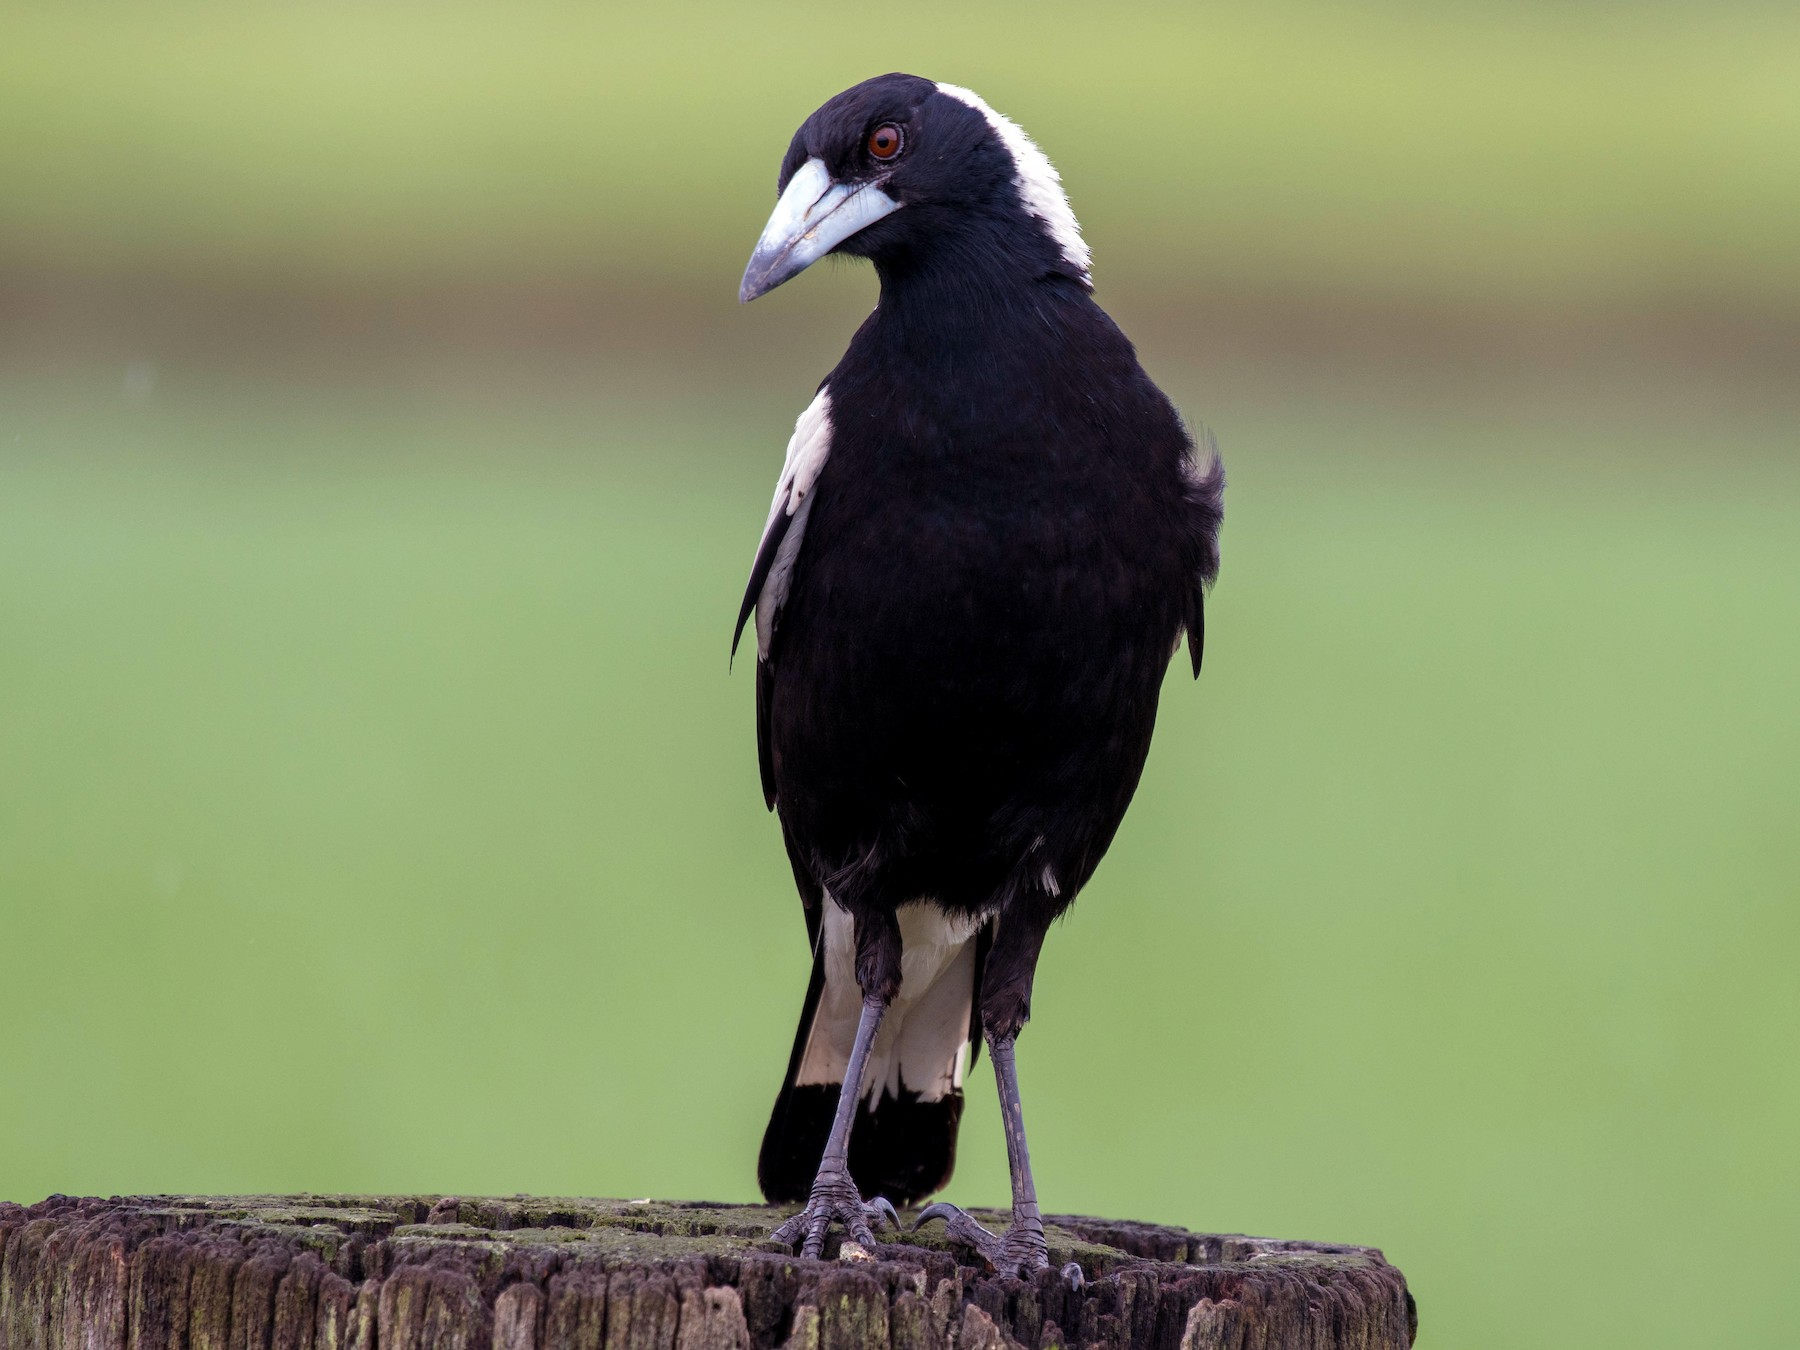 Australian Magpie - Terence Alexander